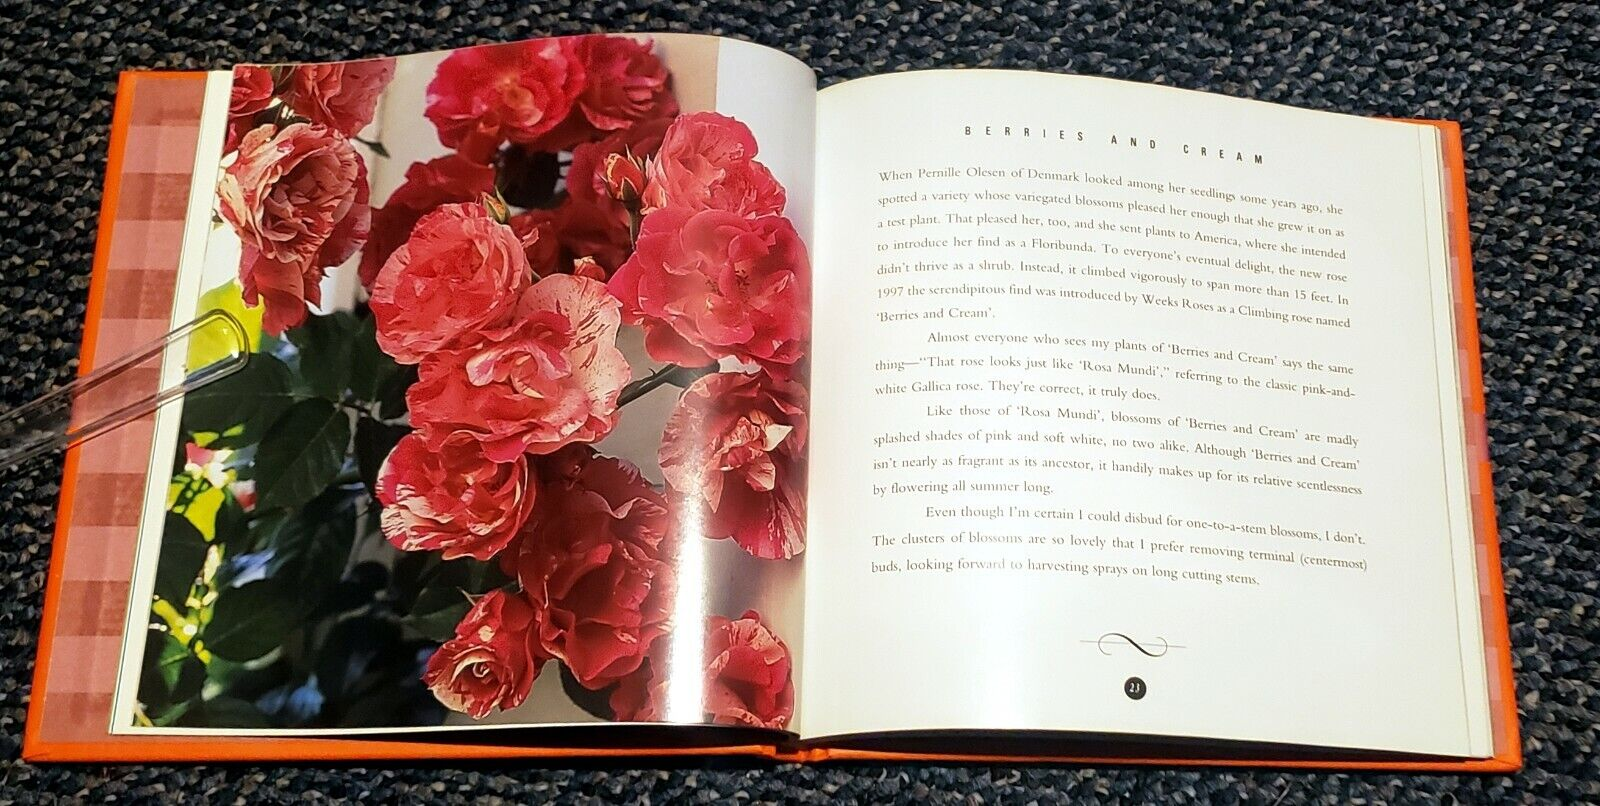 BOOK-RAYFORD CLAYTON REDDELL PASSION OF CUT-FLOWER ROSES-BOUQUET-GROW 40 VARIETY - $4.59